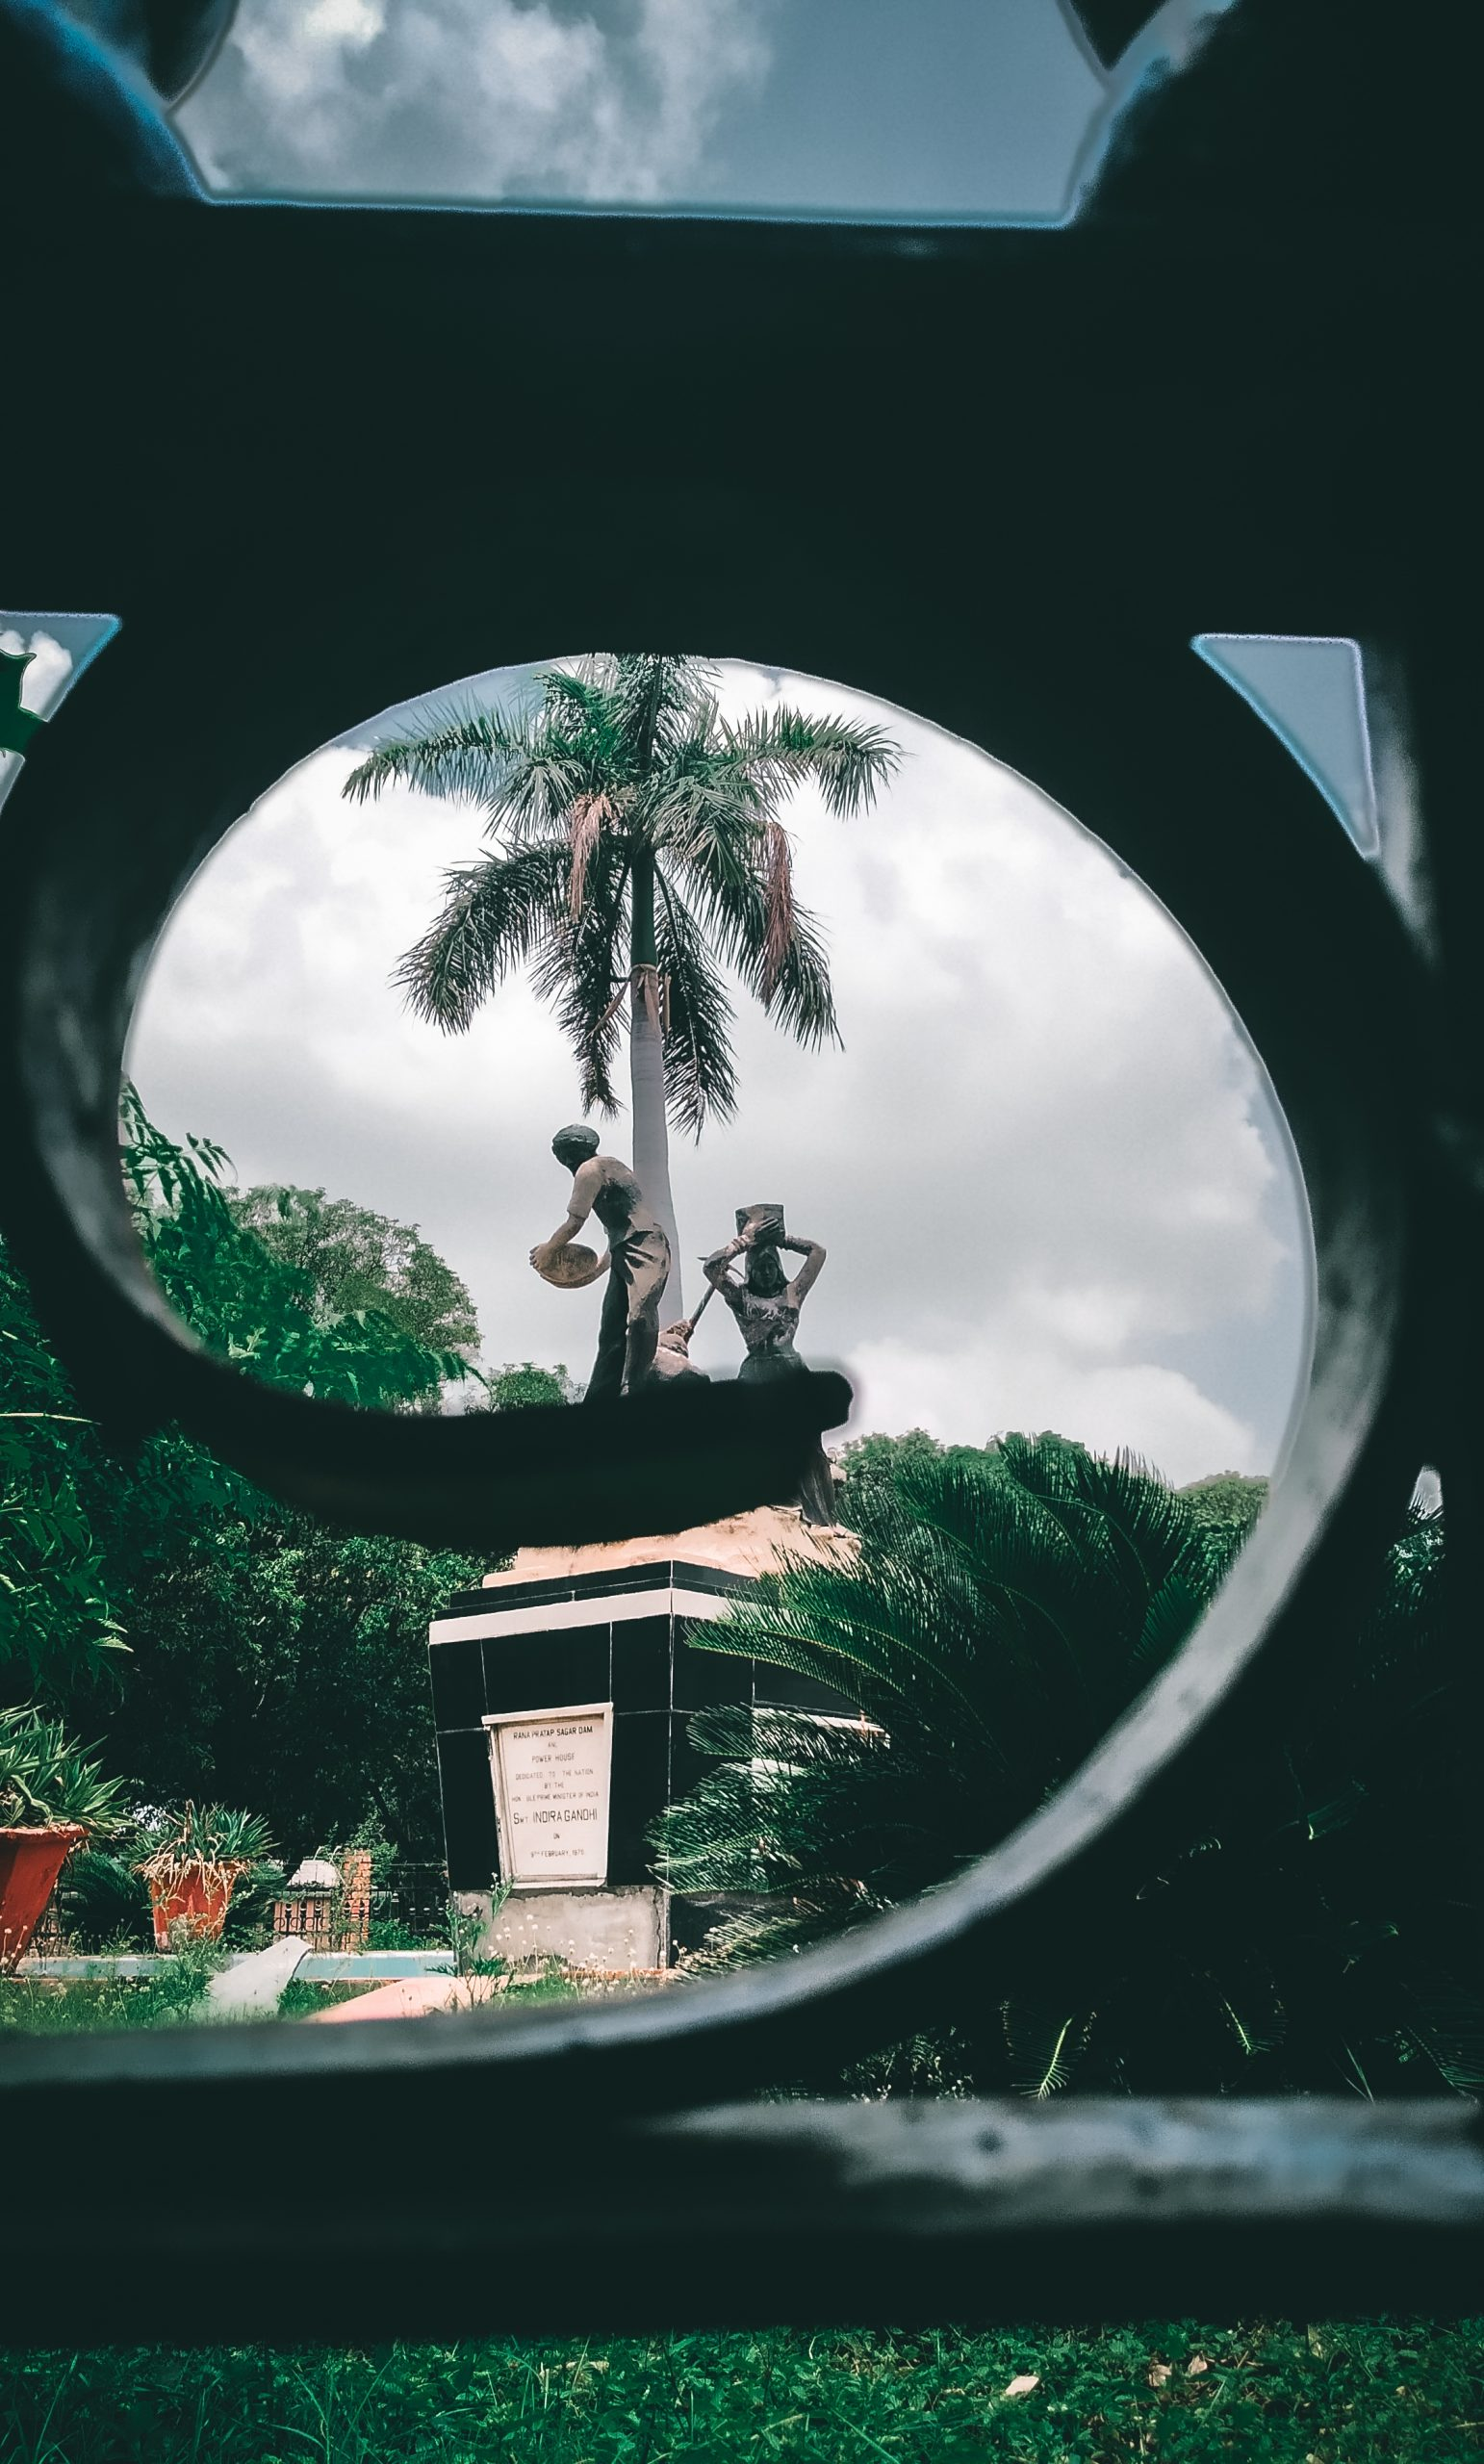 Workers statues through iron angle